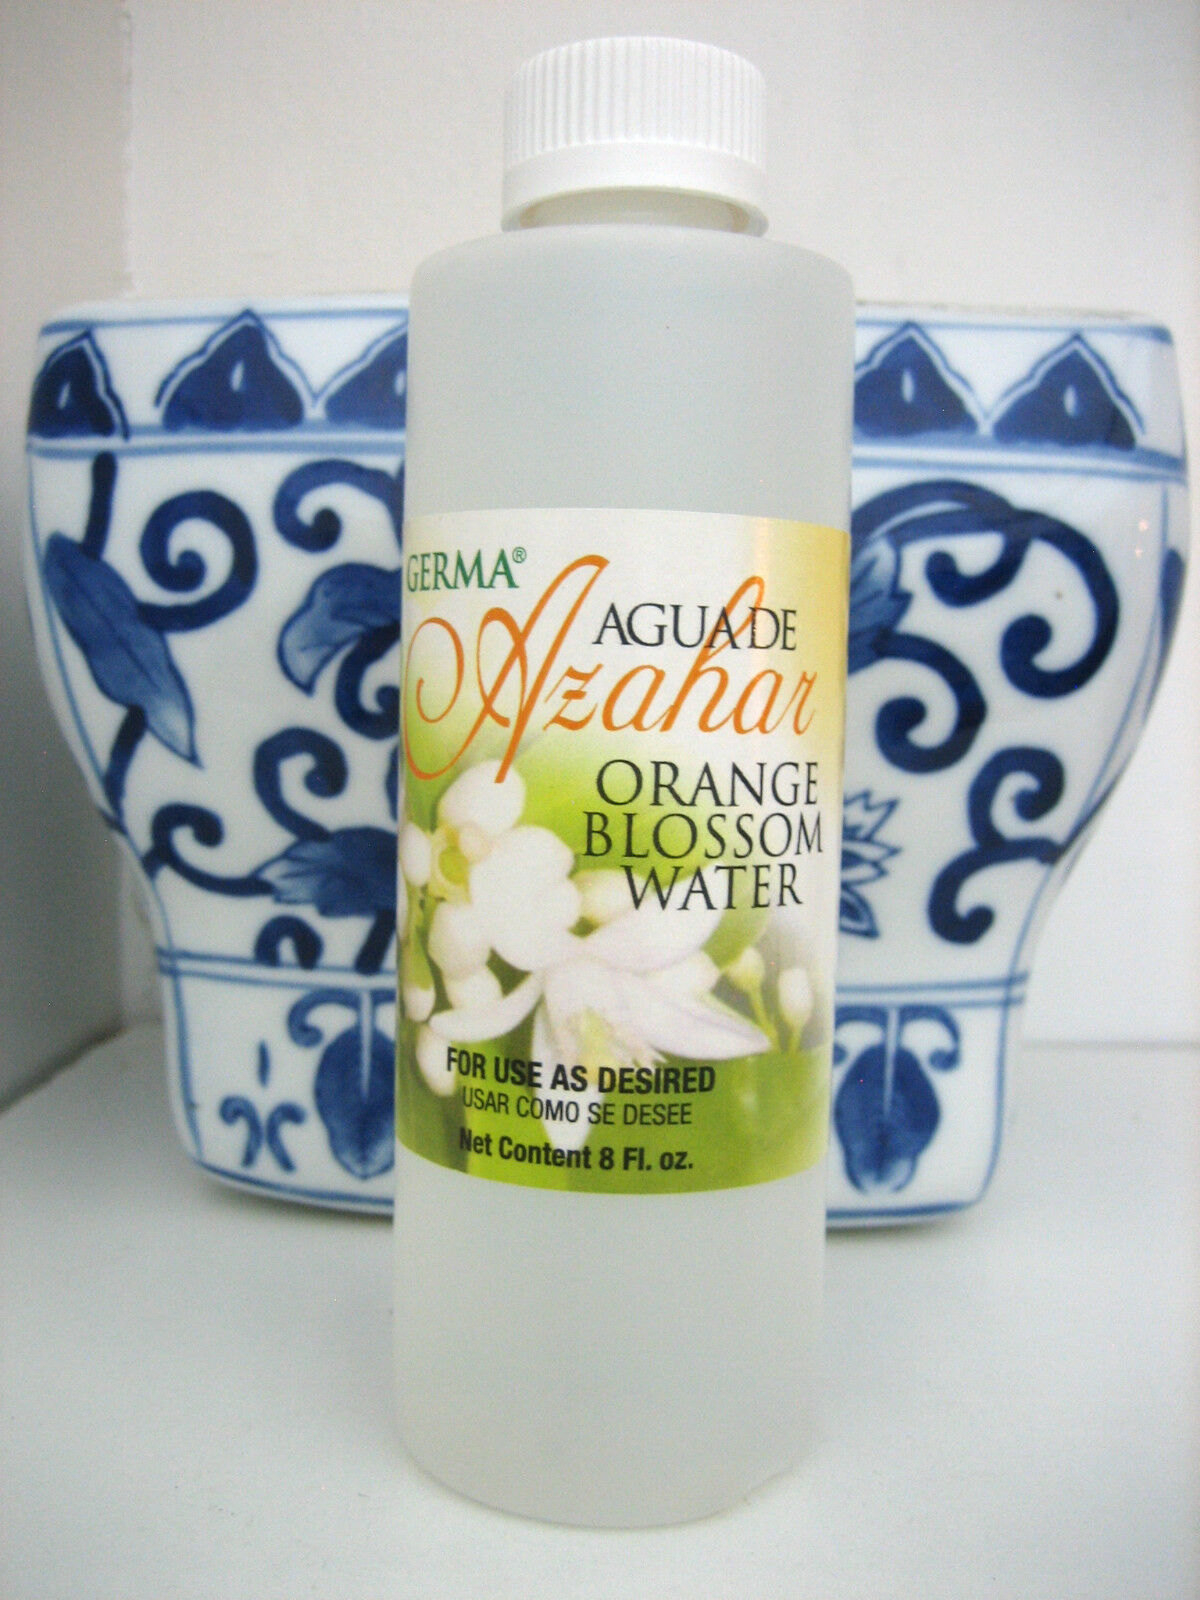 Germa Orange Blossom Water Body Splash (Agua de Azahar) 8 oz